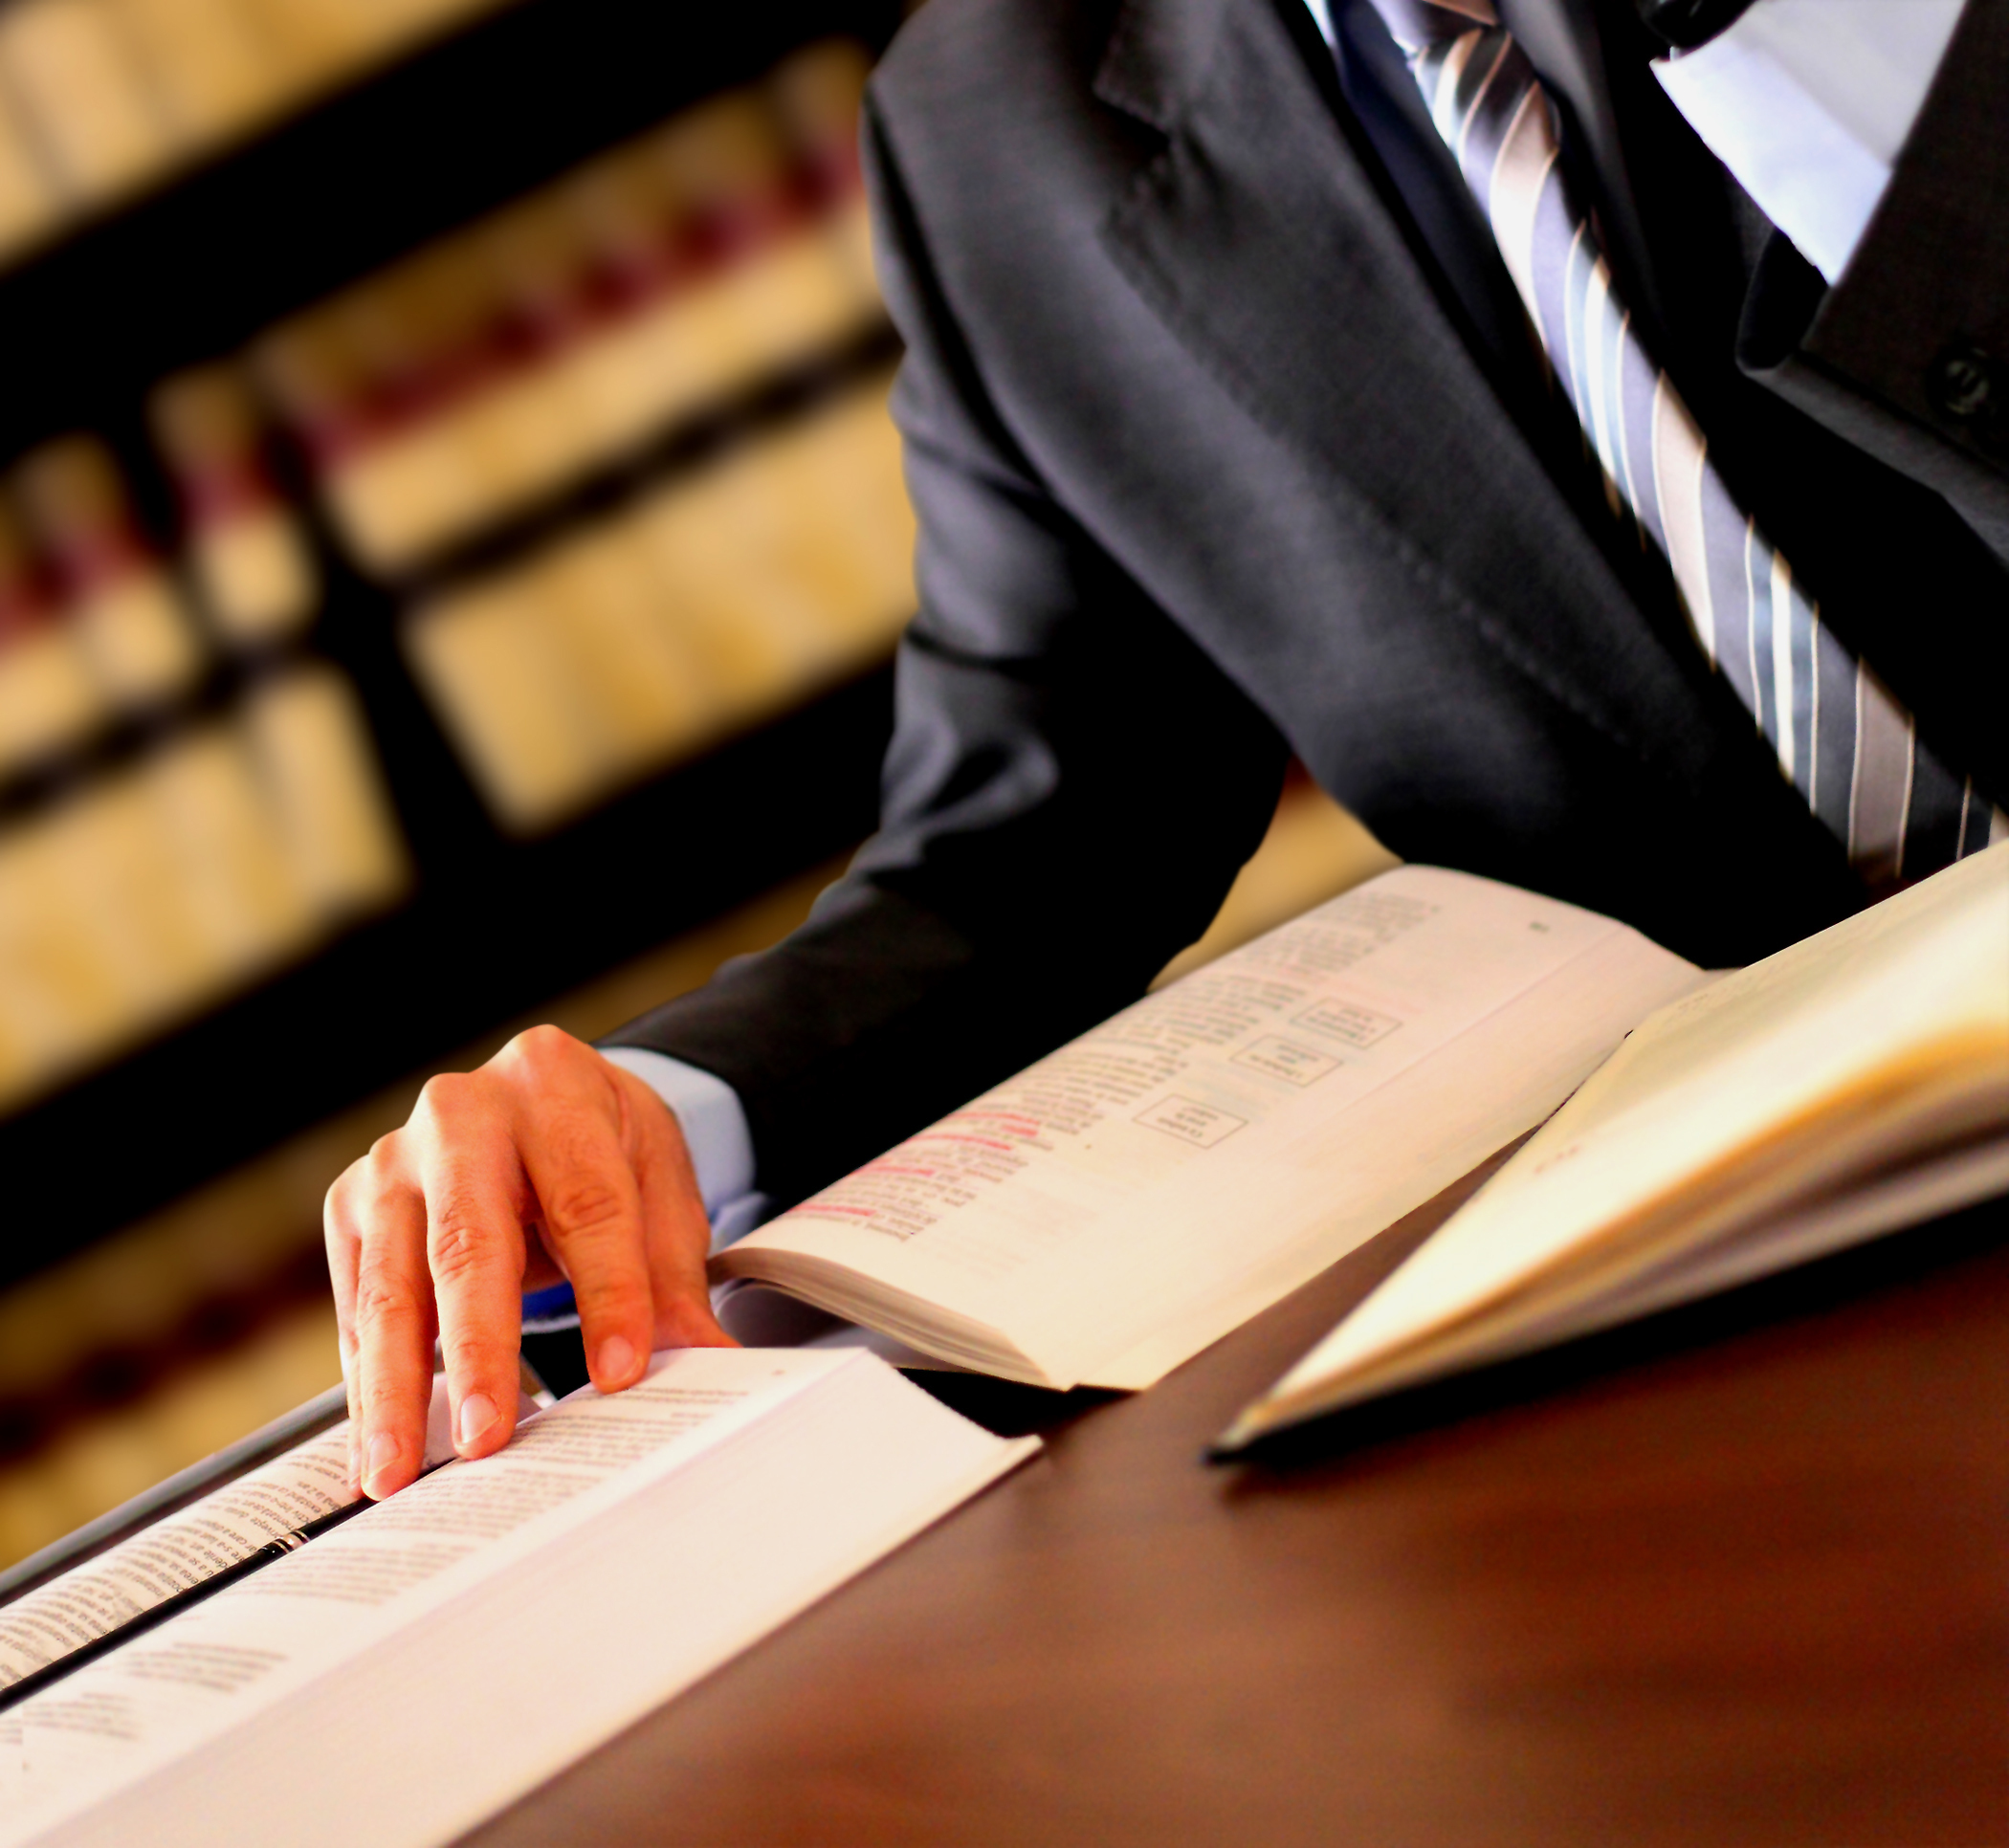 Making a Will Requires the Help of a Competent Attorney